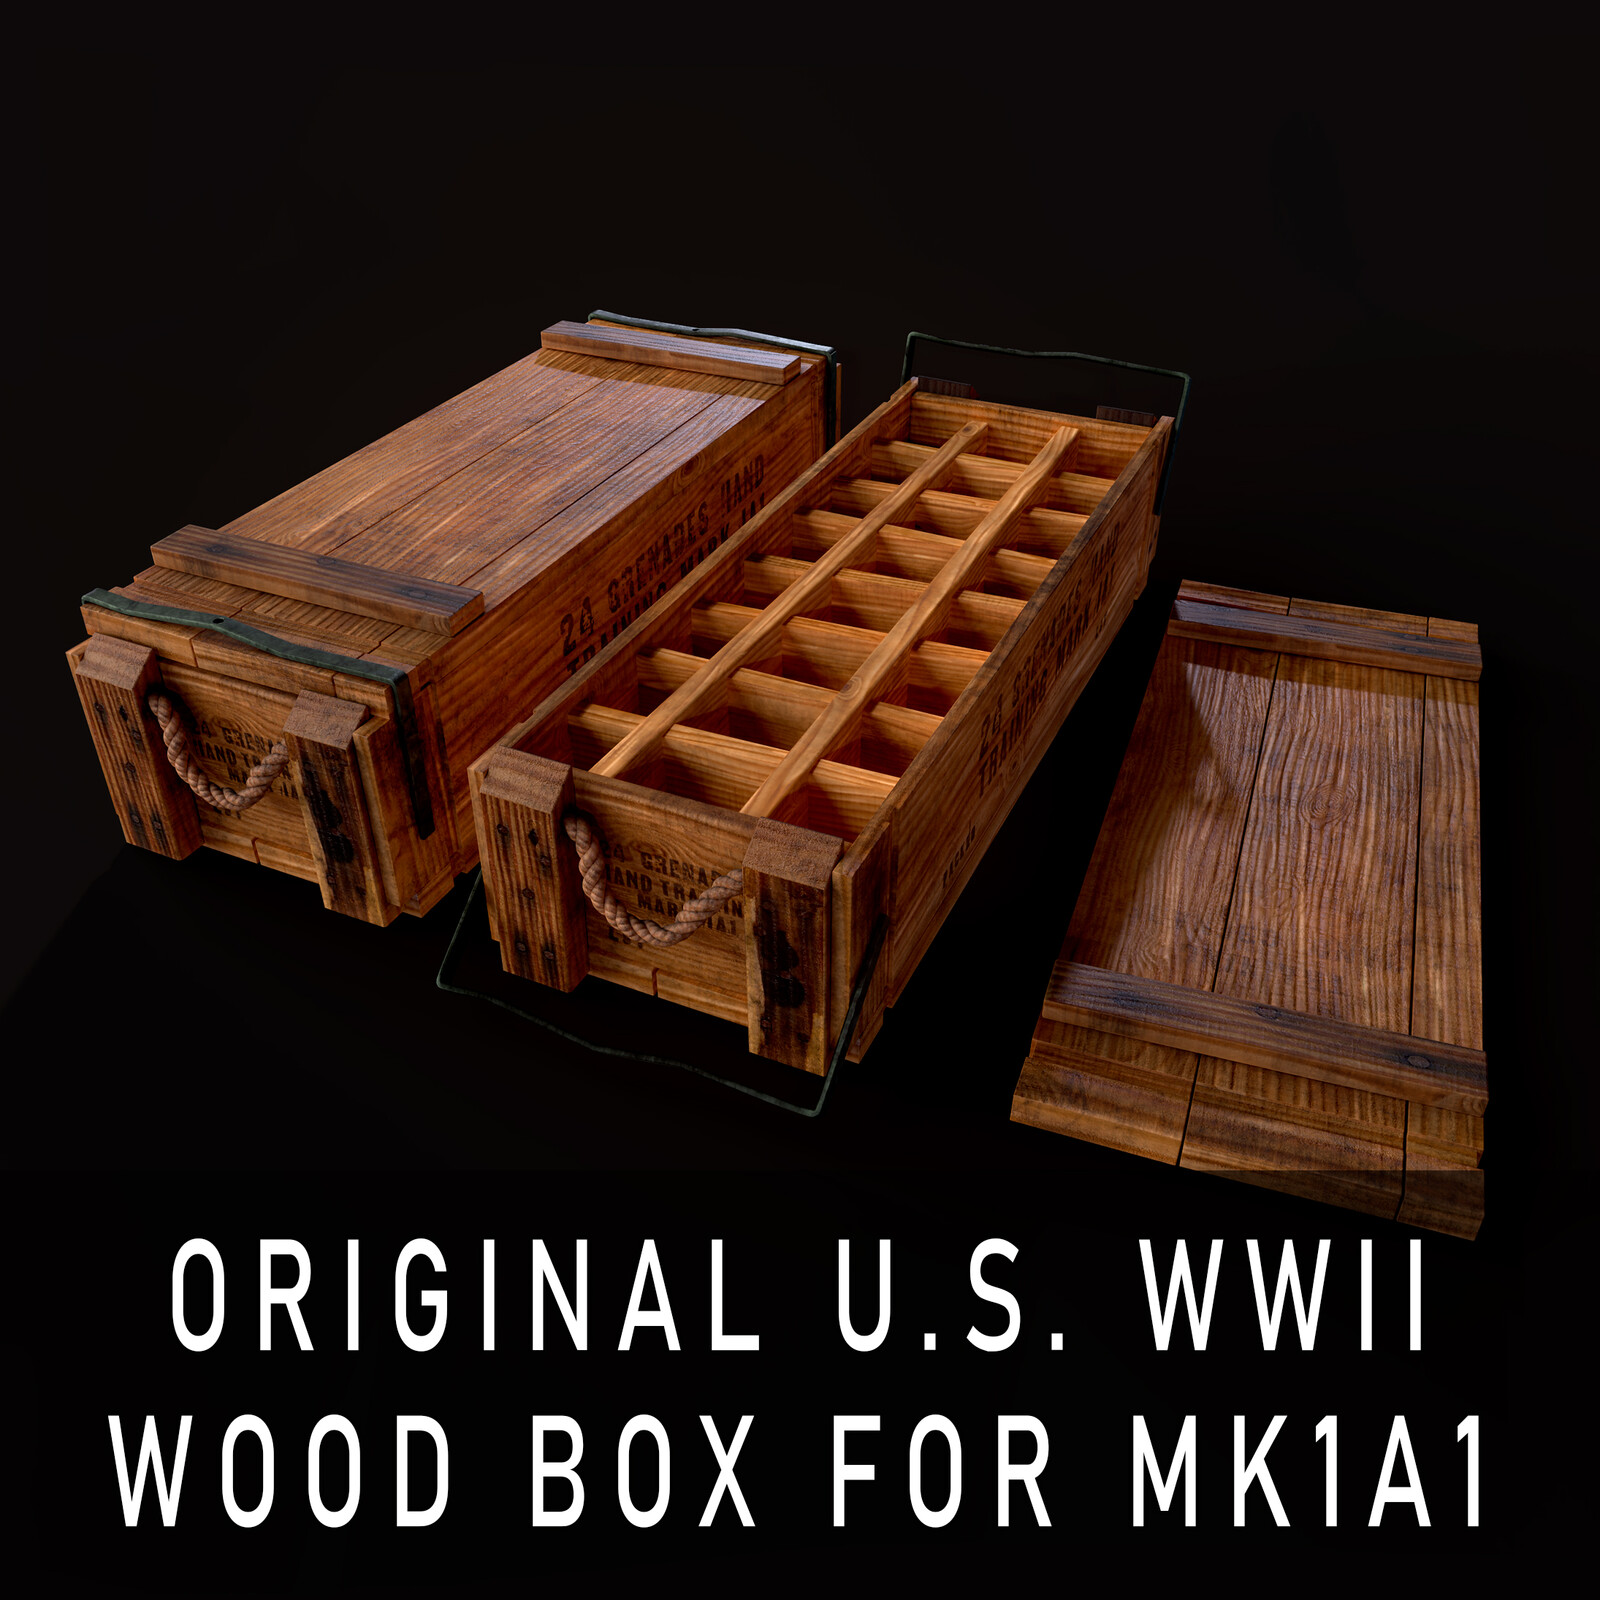 Original U.S. WWII Wood Box for MK1A1 Grenades